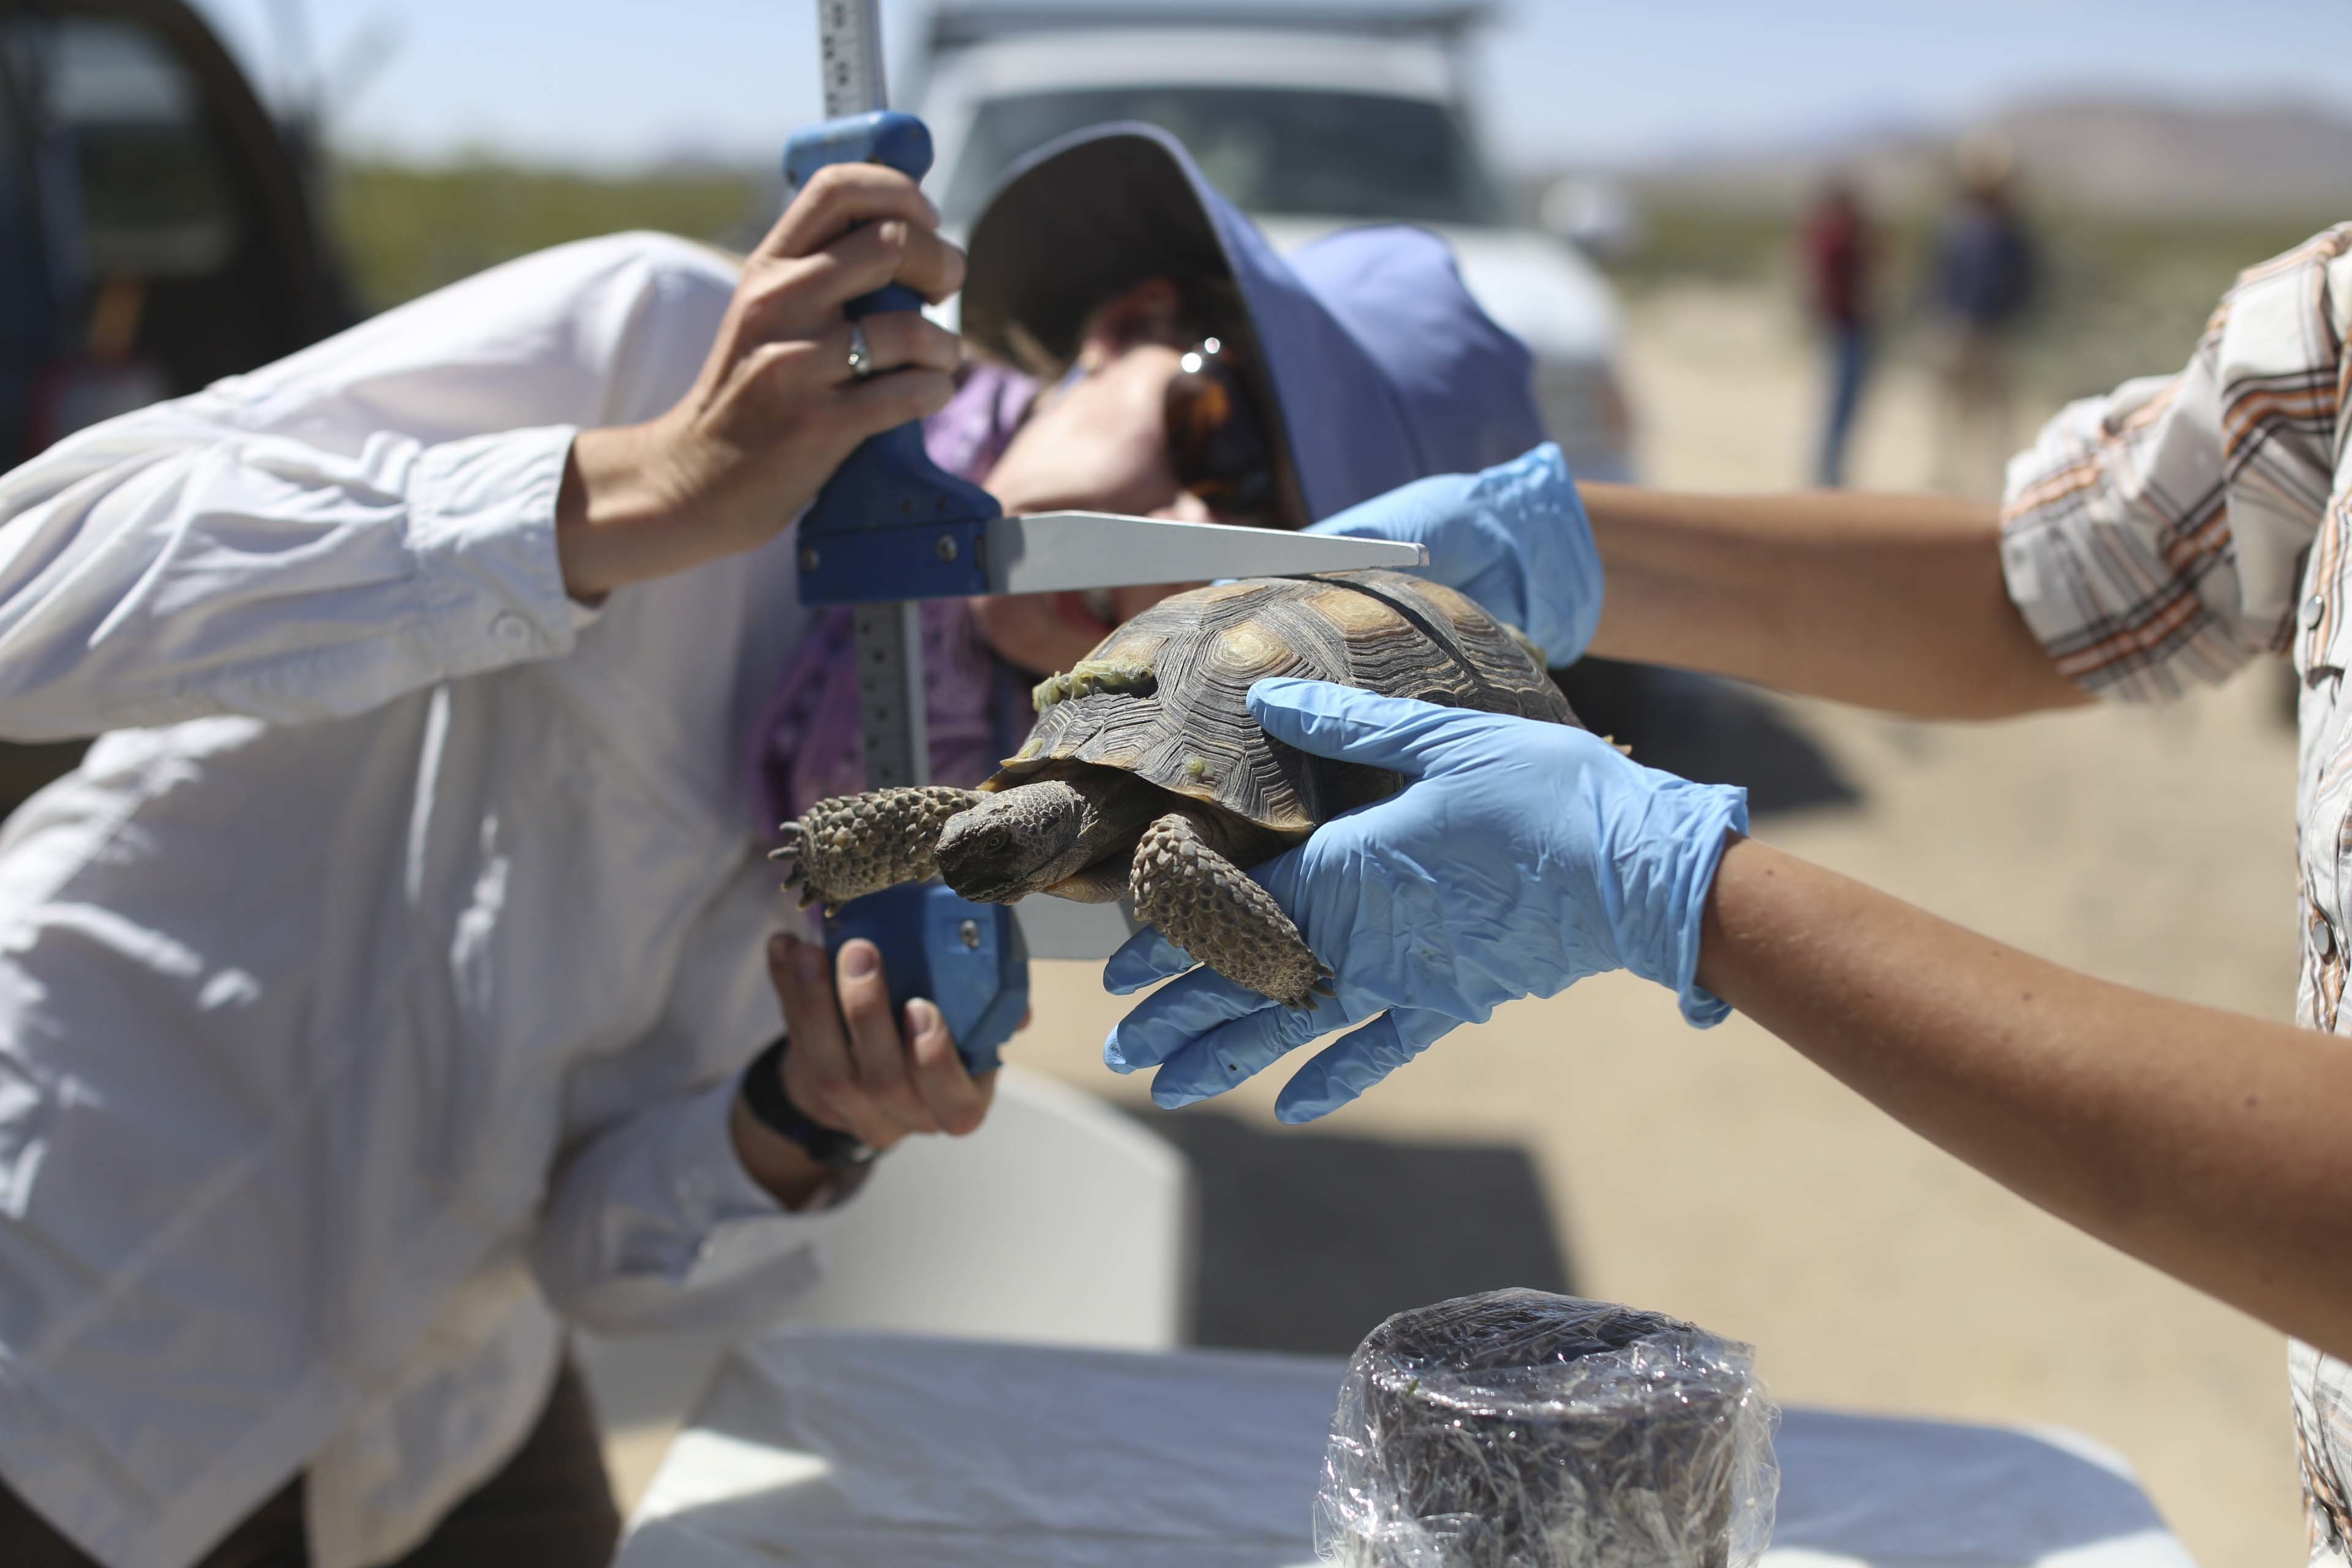 Biologists measure desert tortoise at Marine Corps Air Ground Combat Center Twentynine Palms